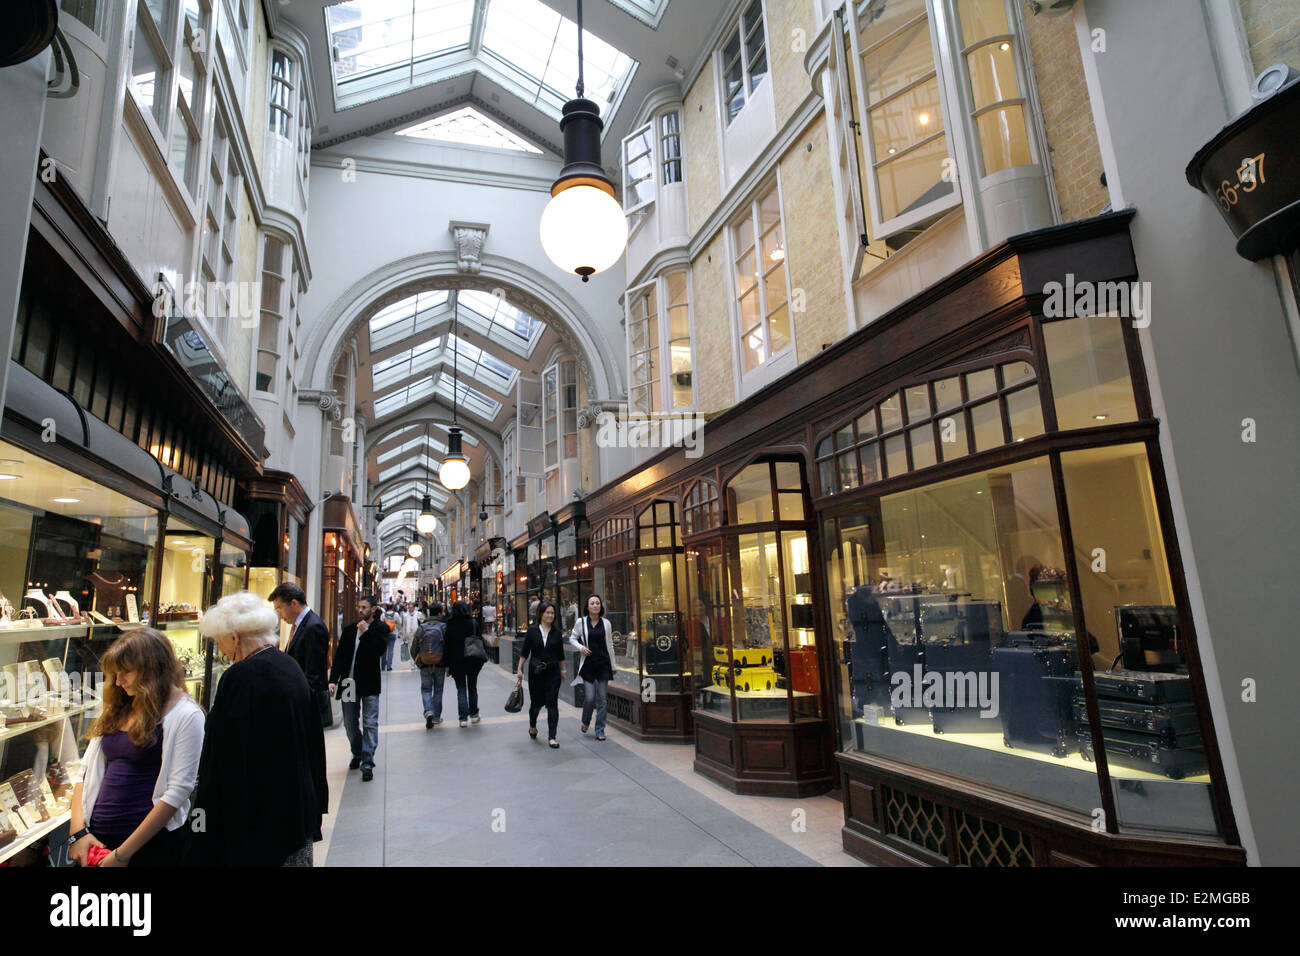 Burlington arcade, a covered walkway of shops between Burlington Gardens and Piccadilly, London. - Stock Image